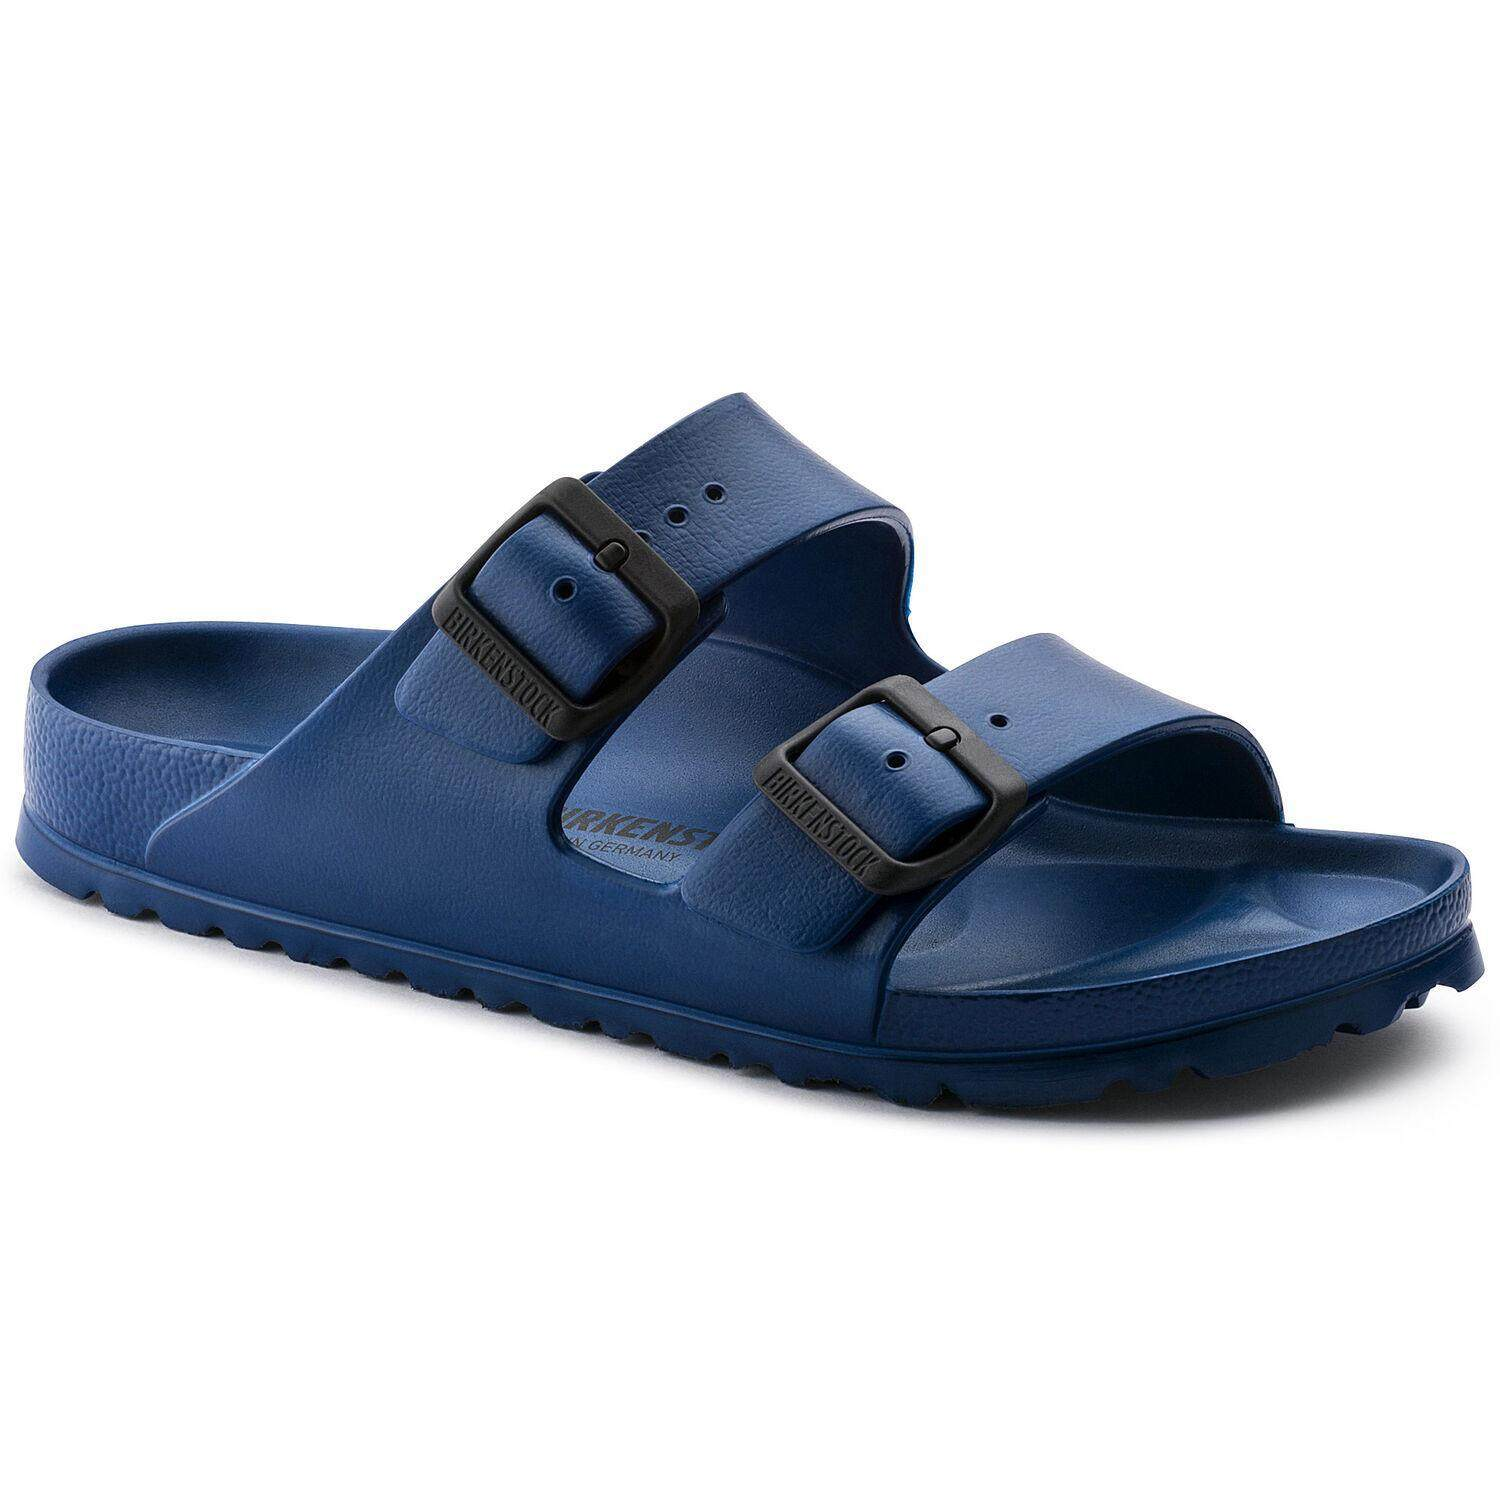 Birkenstock Arizona 129433 - Navy